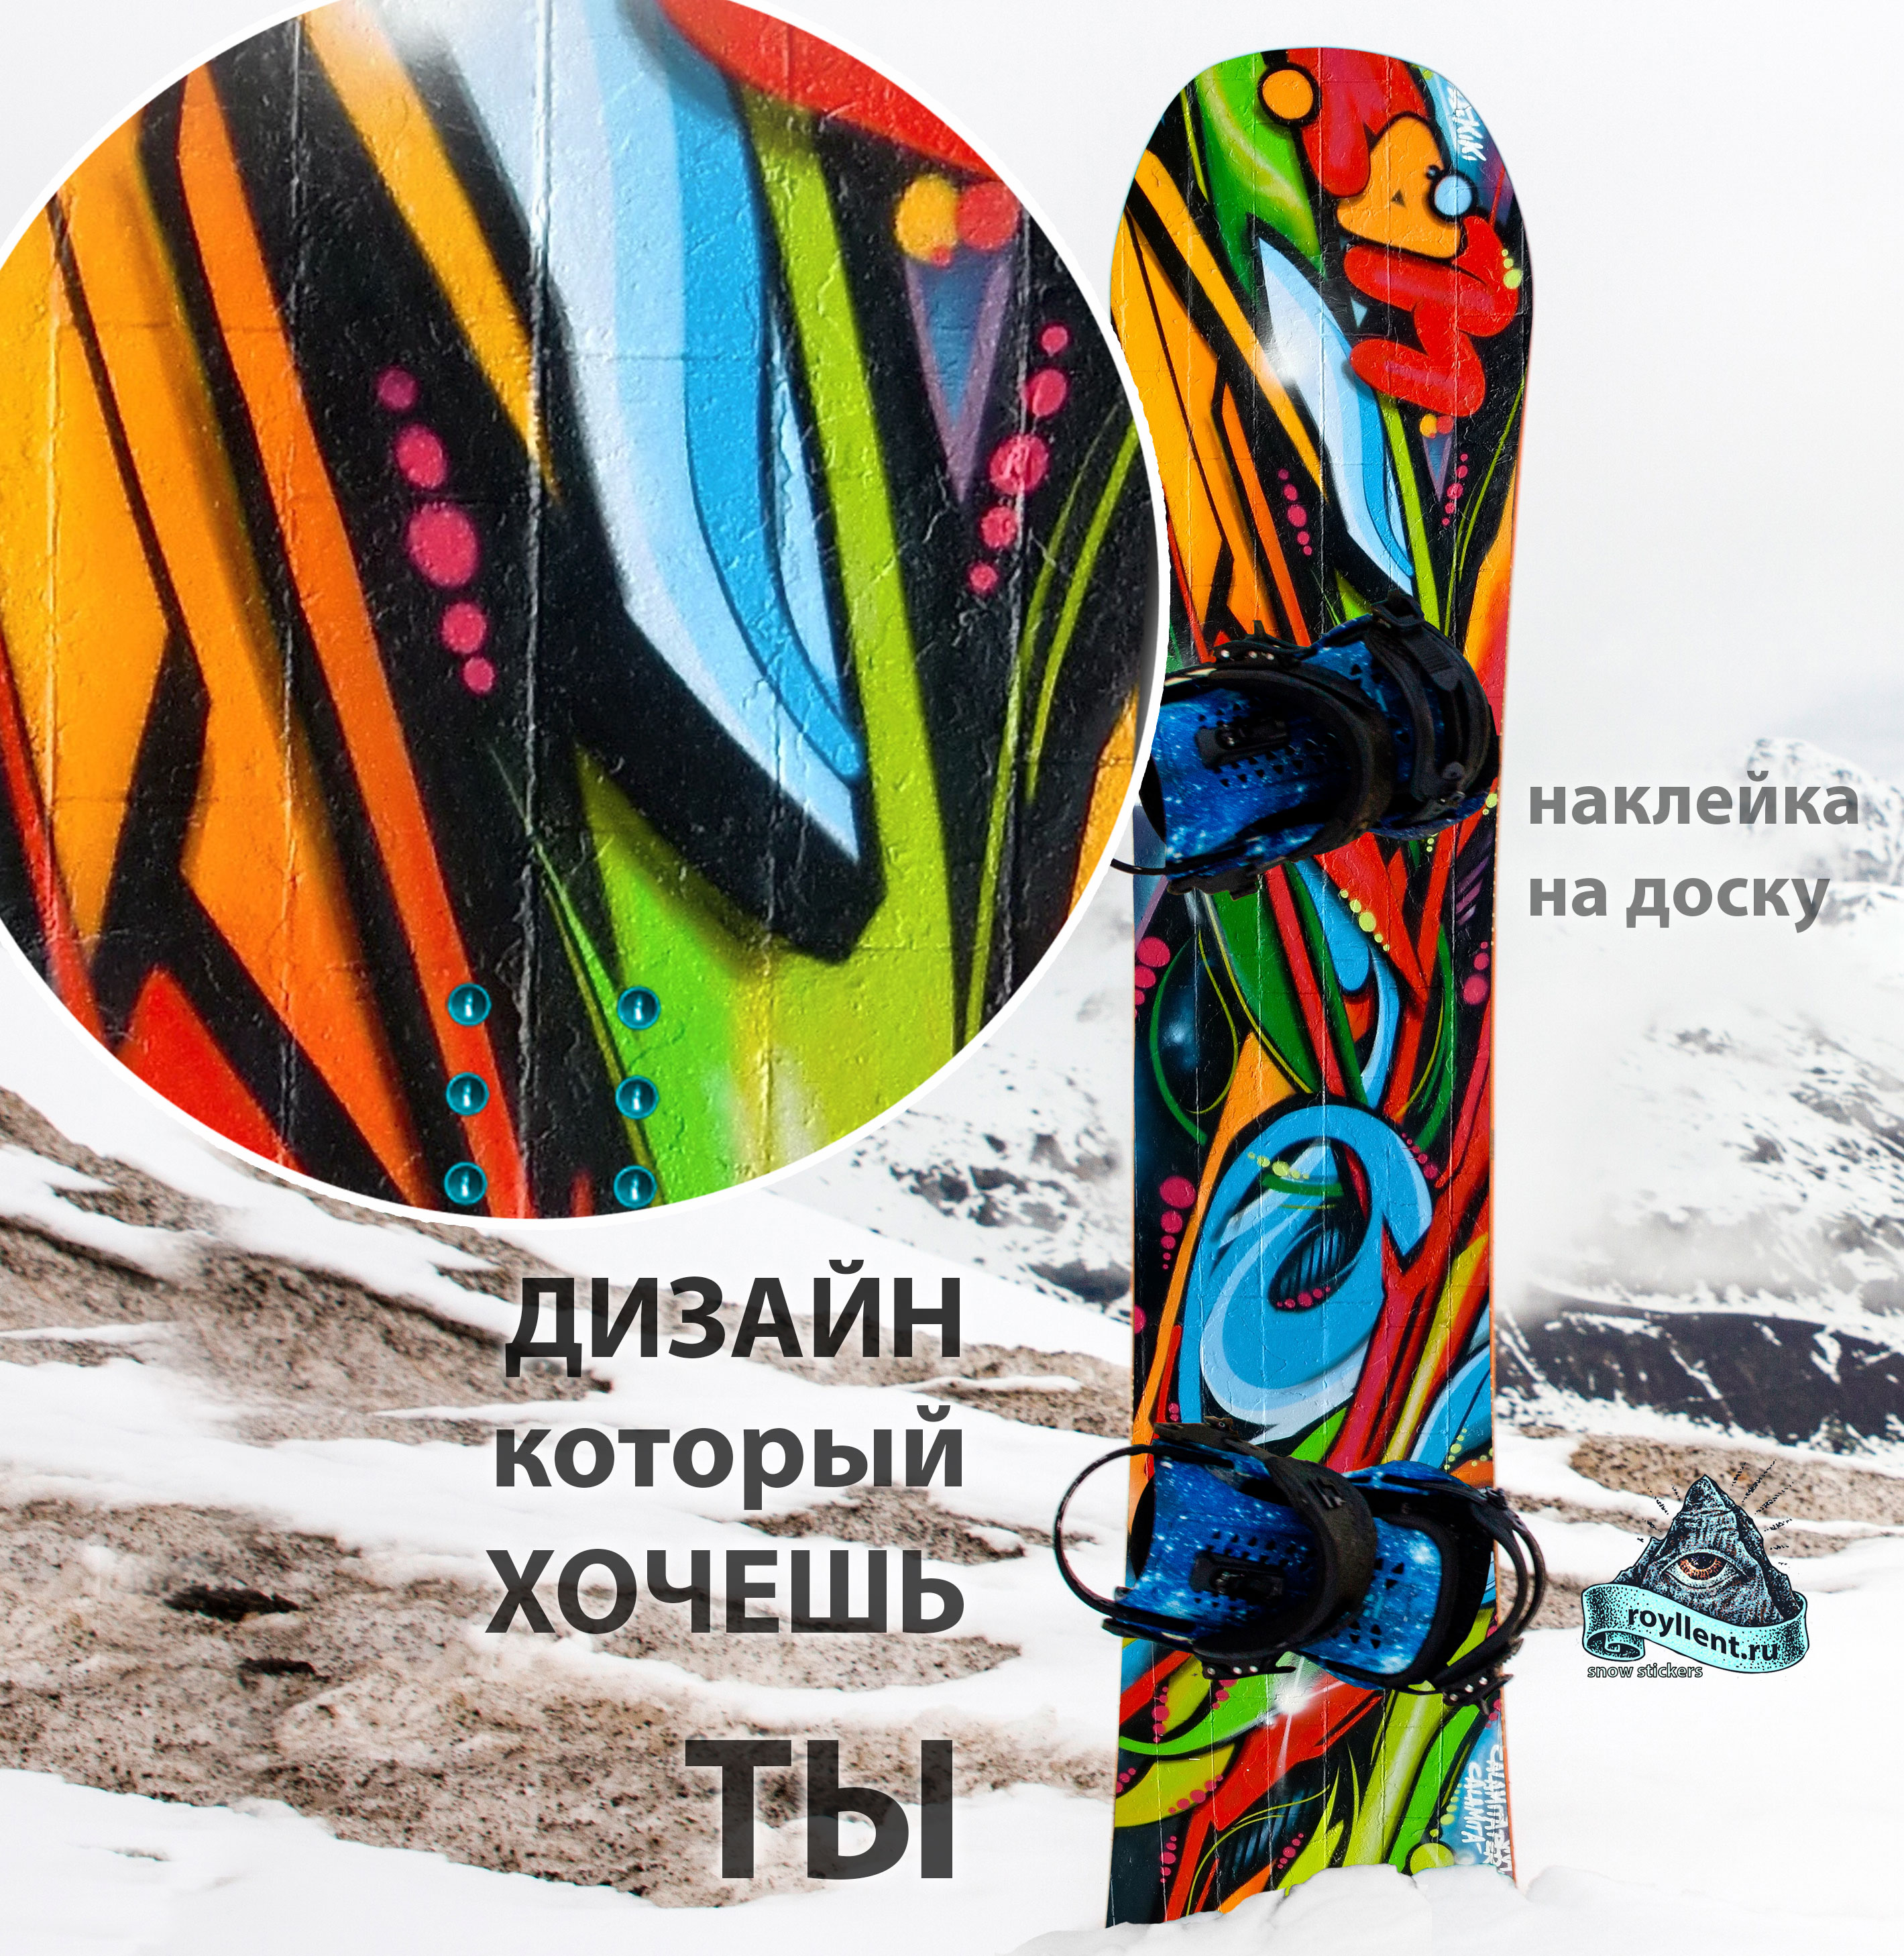 Graffiti Flame Idia Snowboard Design